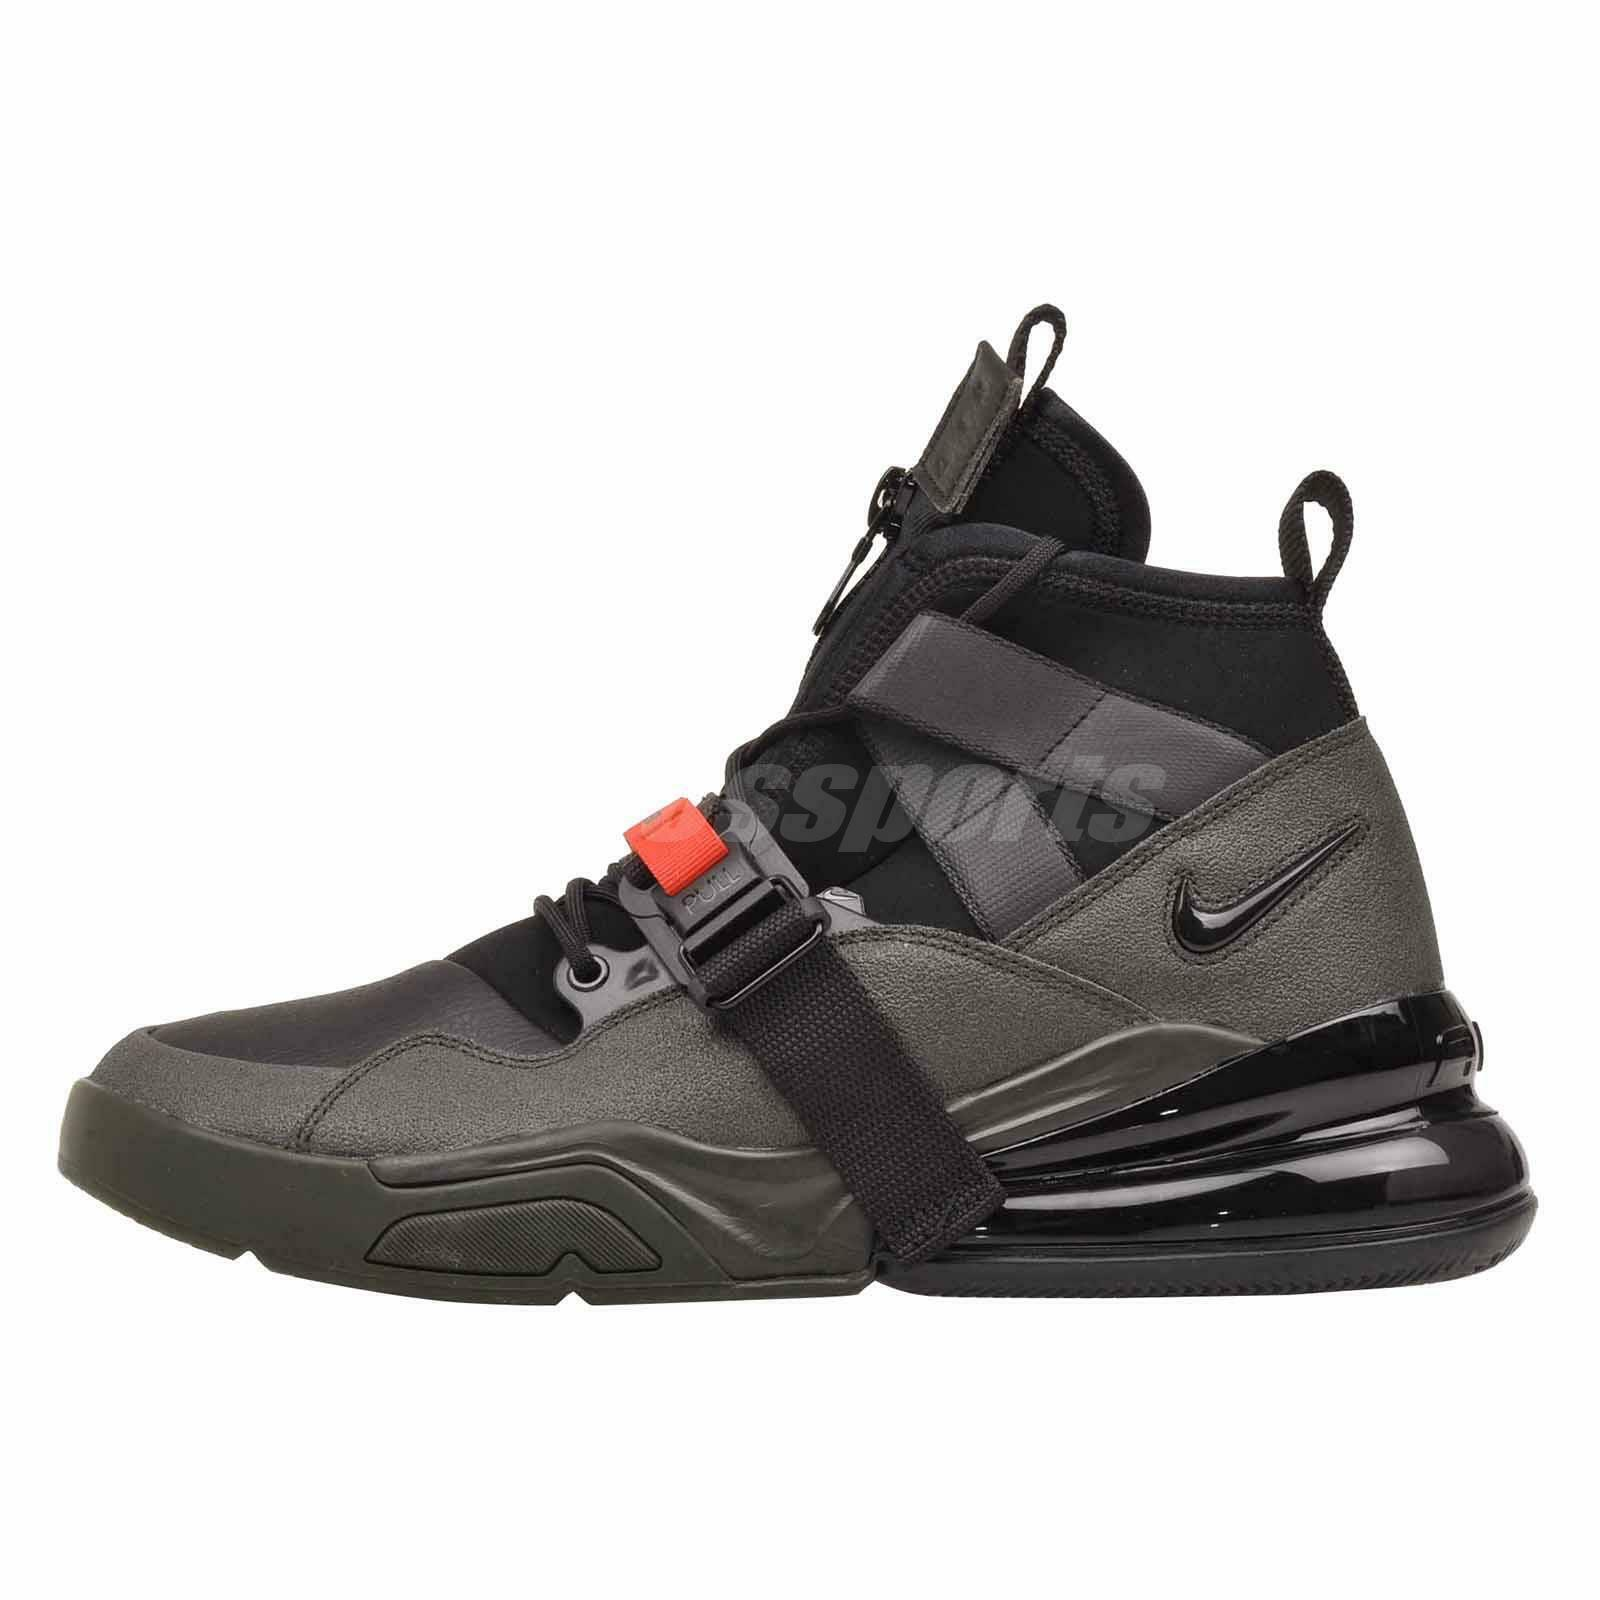 1b54b92a7 Nike Air Force 270 utilitaire Outdoors Homme Chaussures Sequoia ...